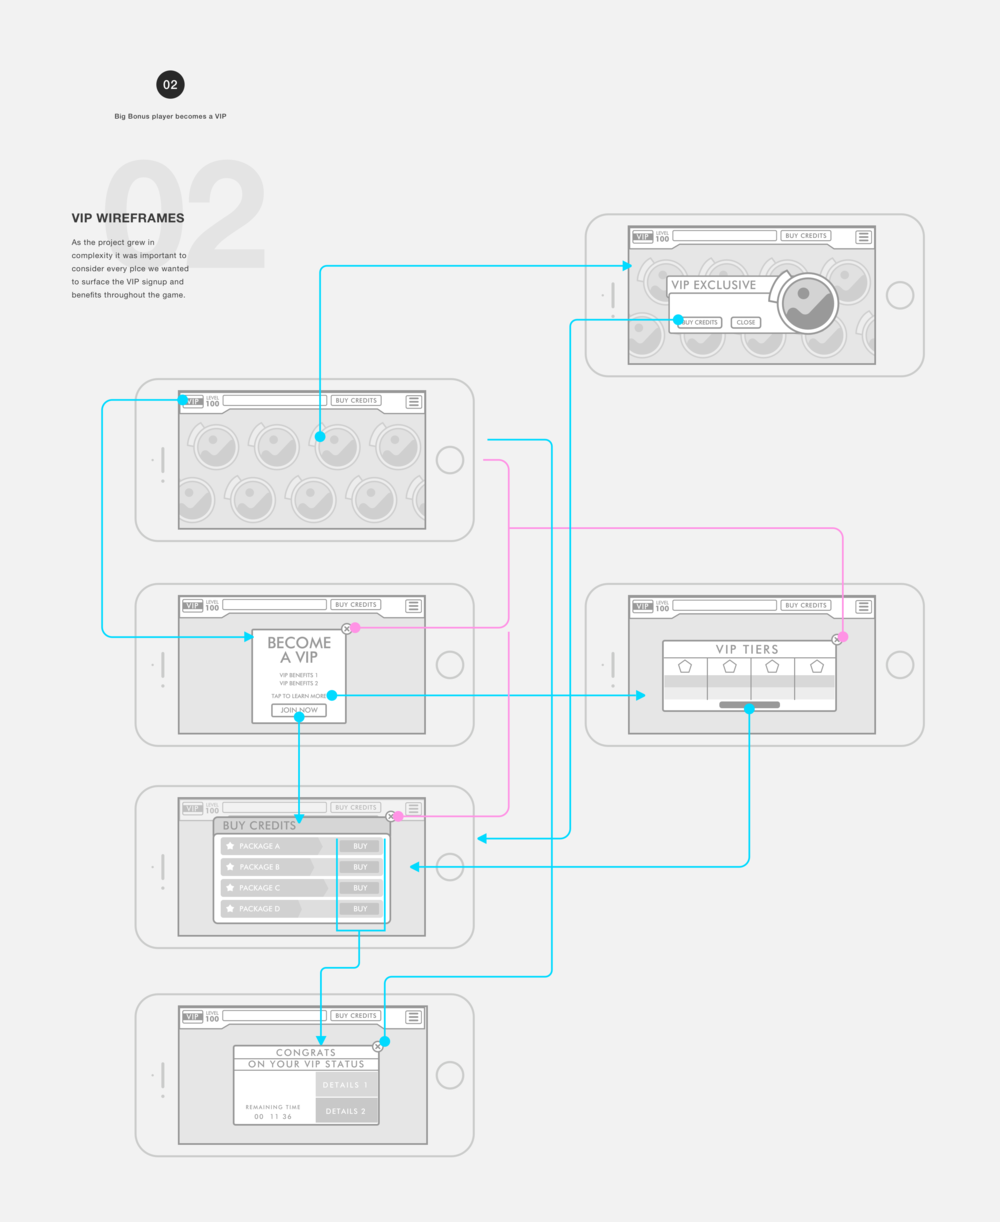 bbs_wireframes_flow.png